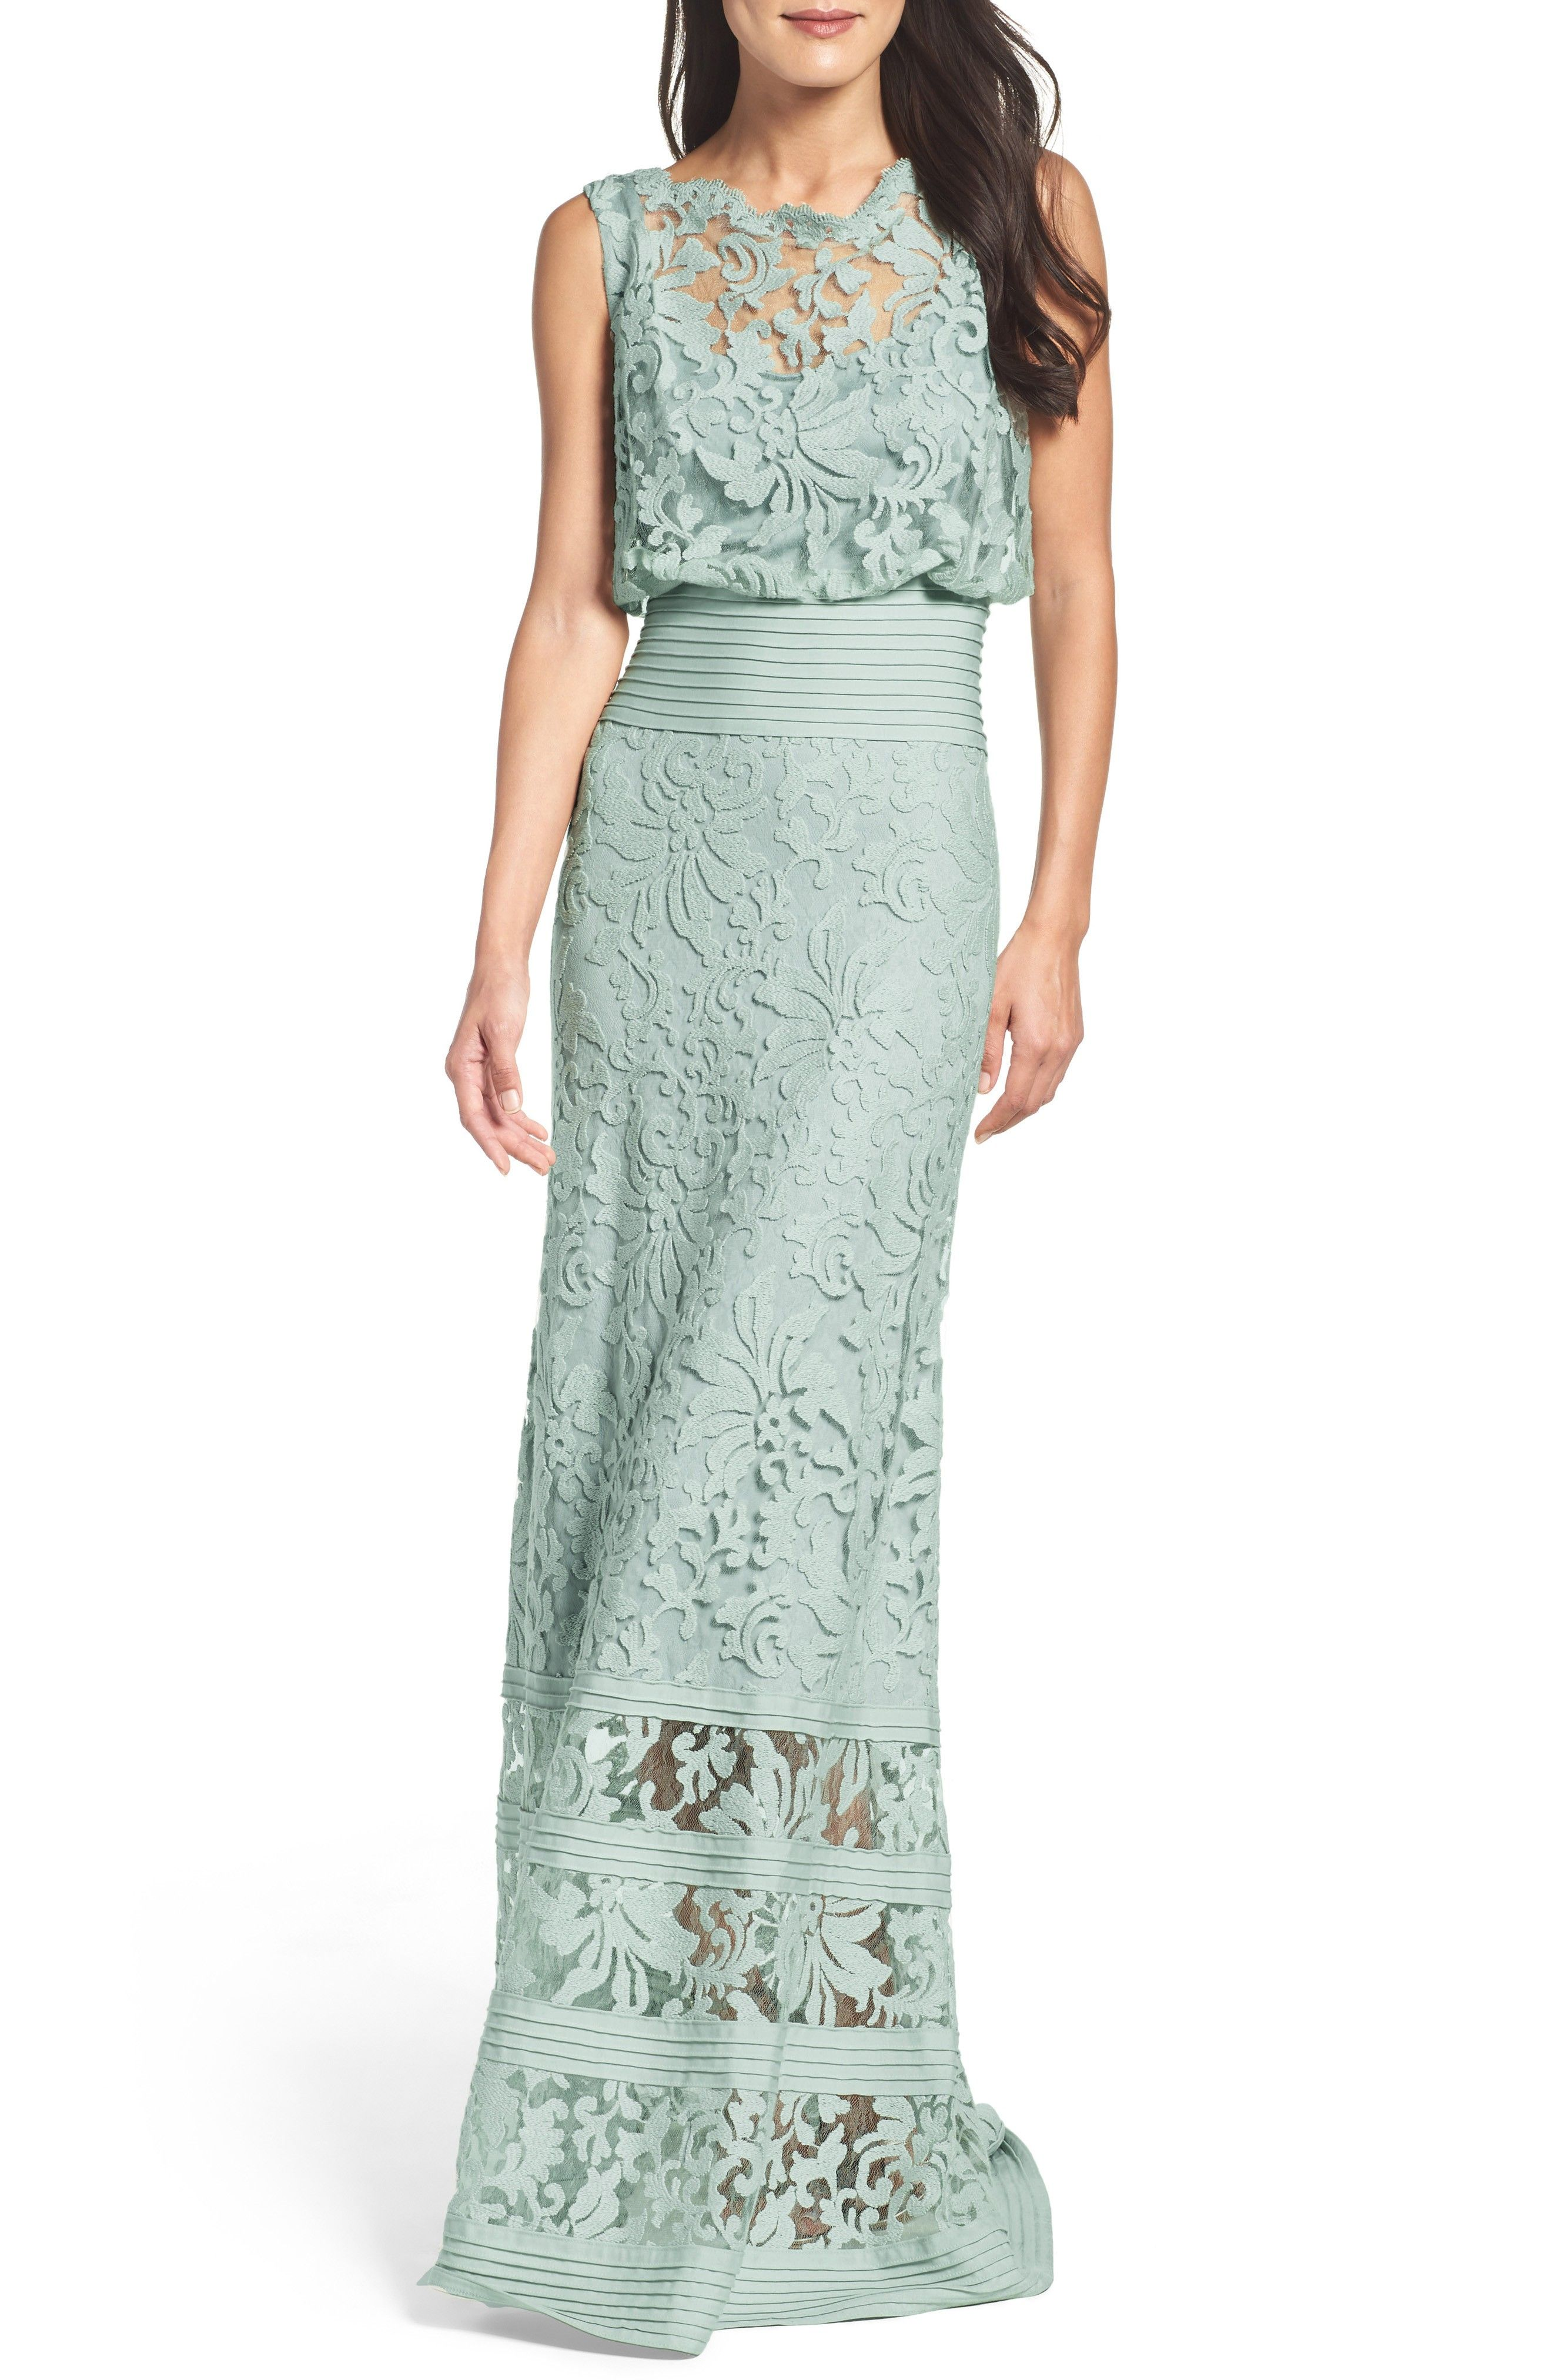 Blouson Gown Light Mint Green Dress For The Mother Of The Bride